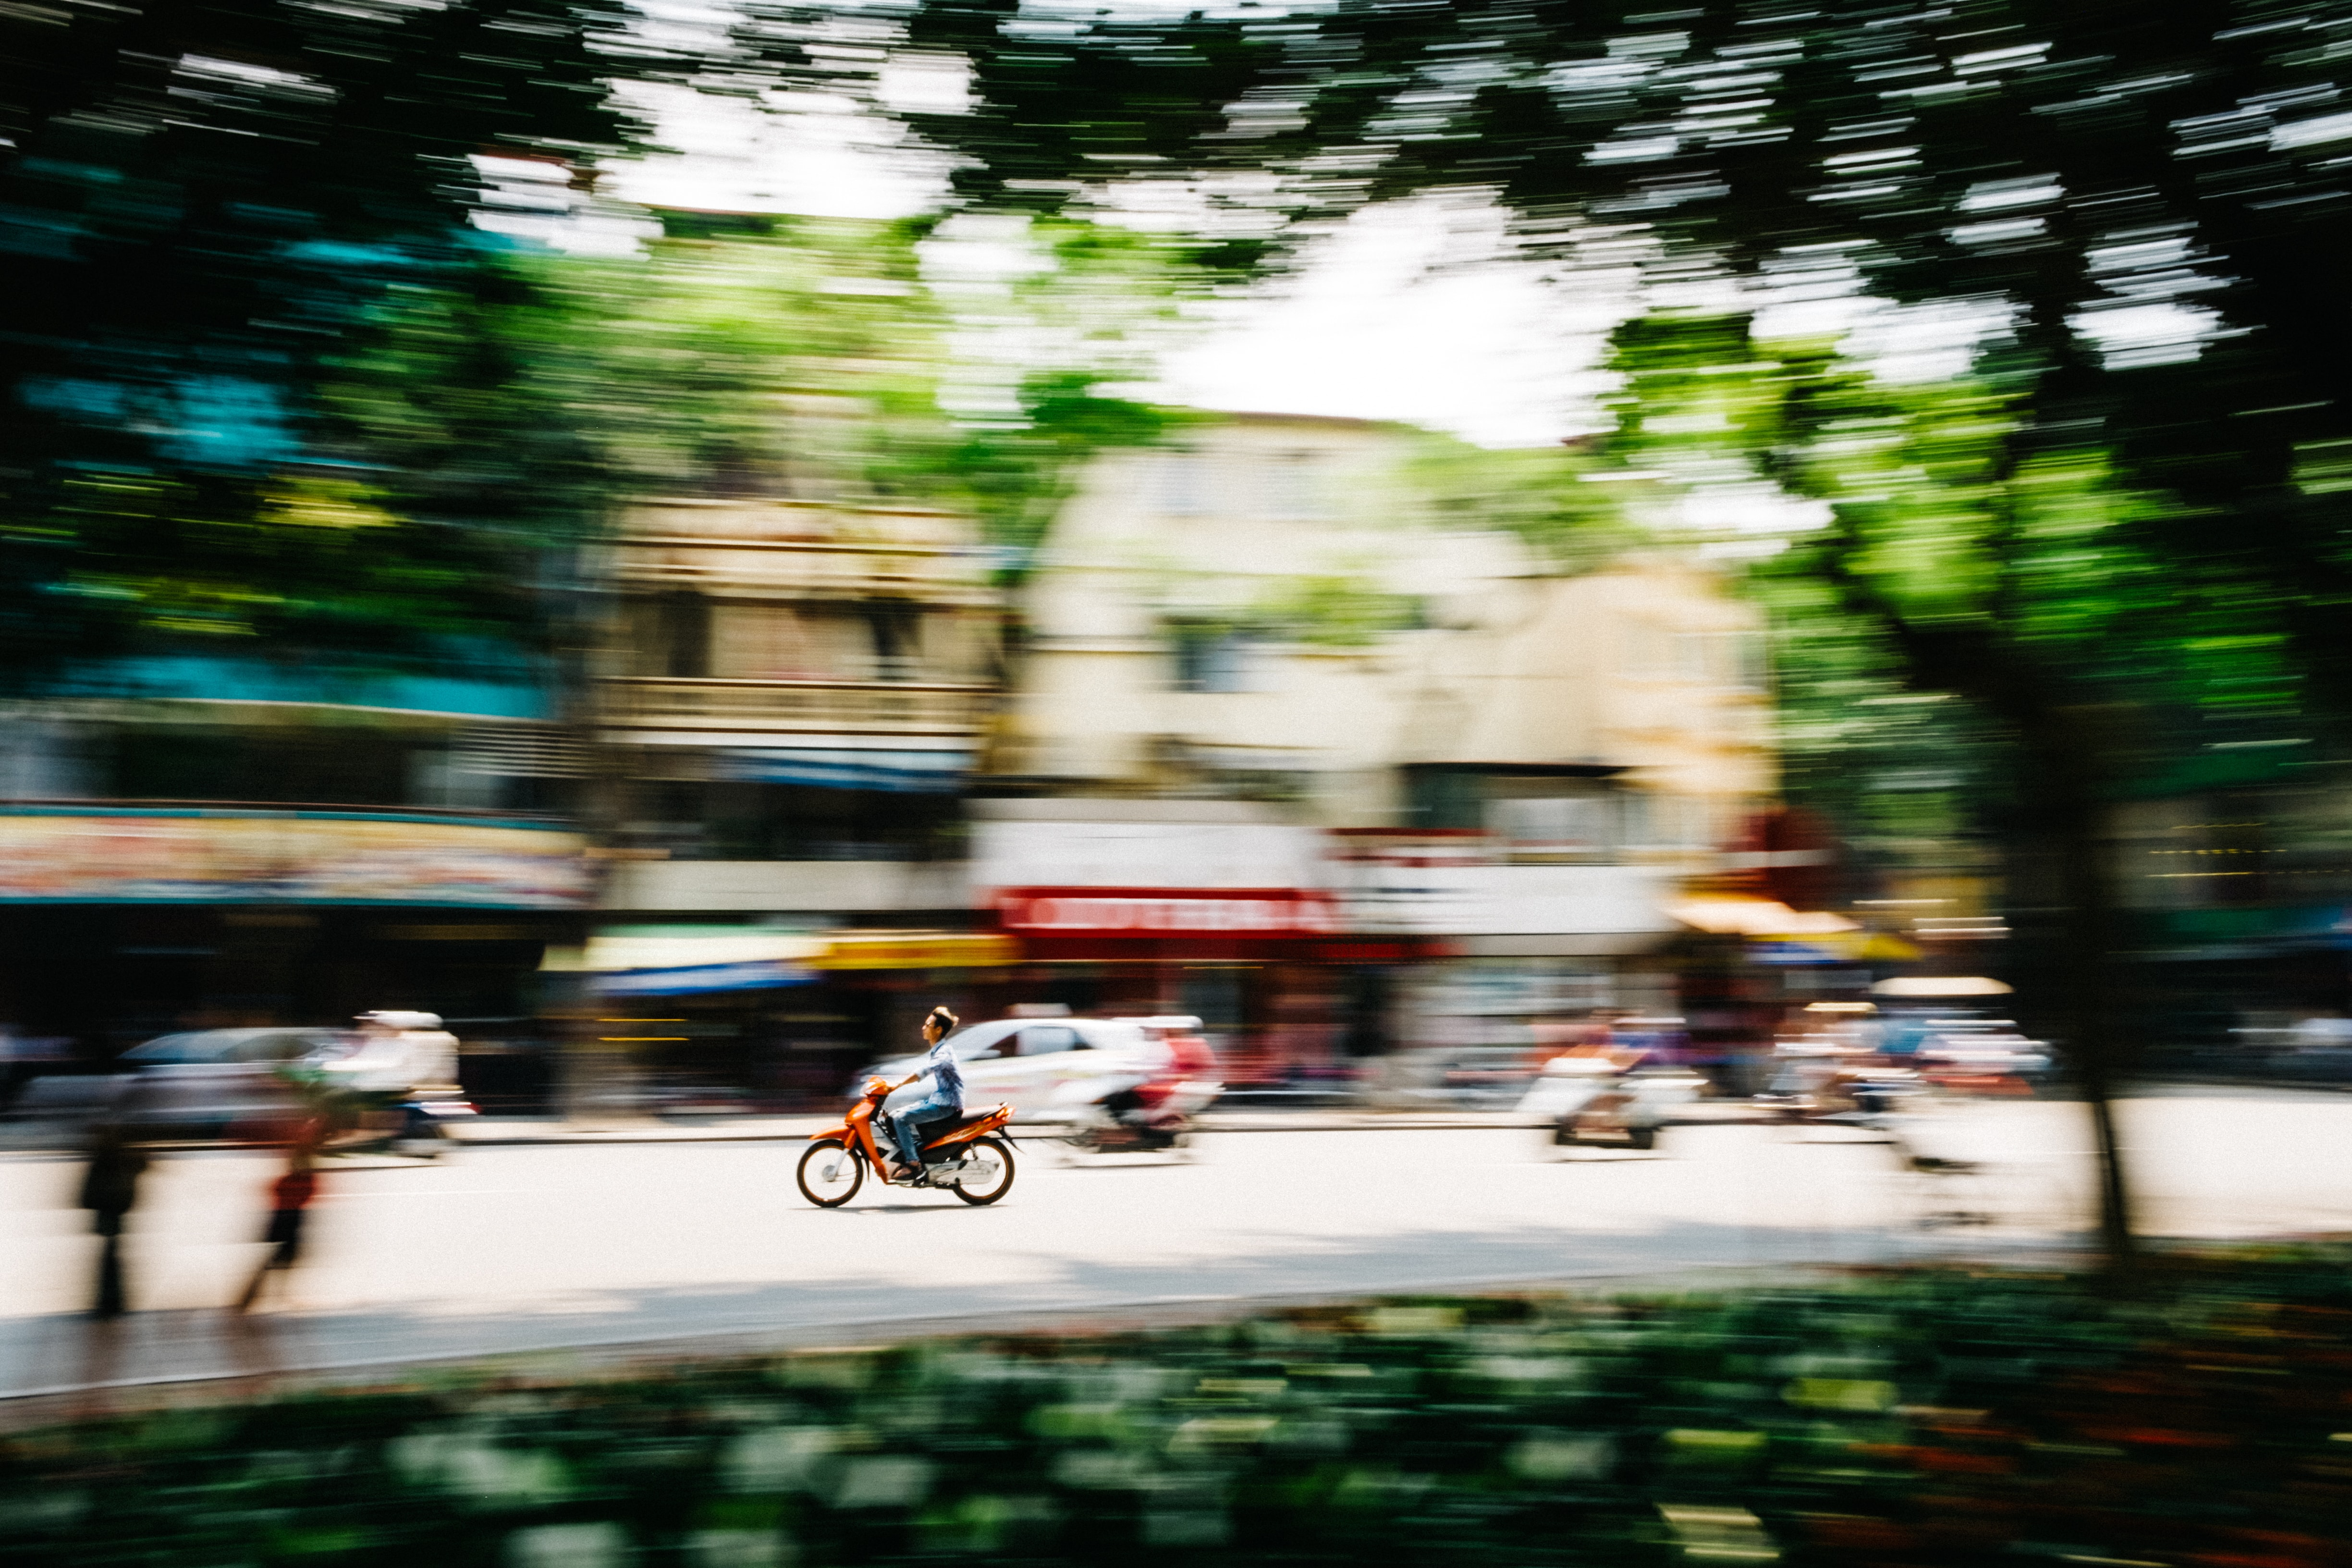 tilt shift photography of man riding motorcycle